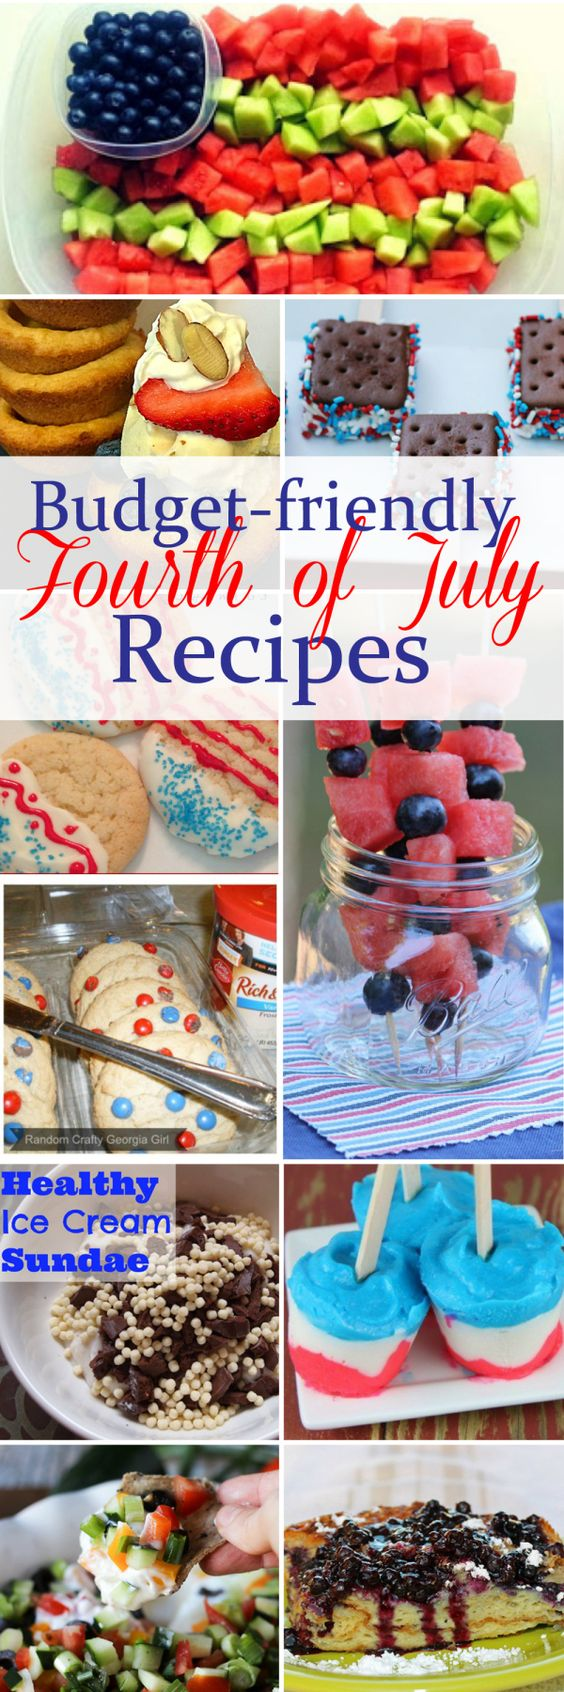 recipes 4th of july party